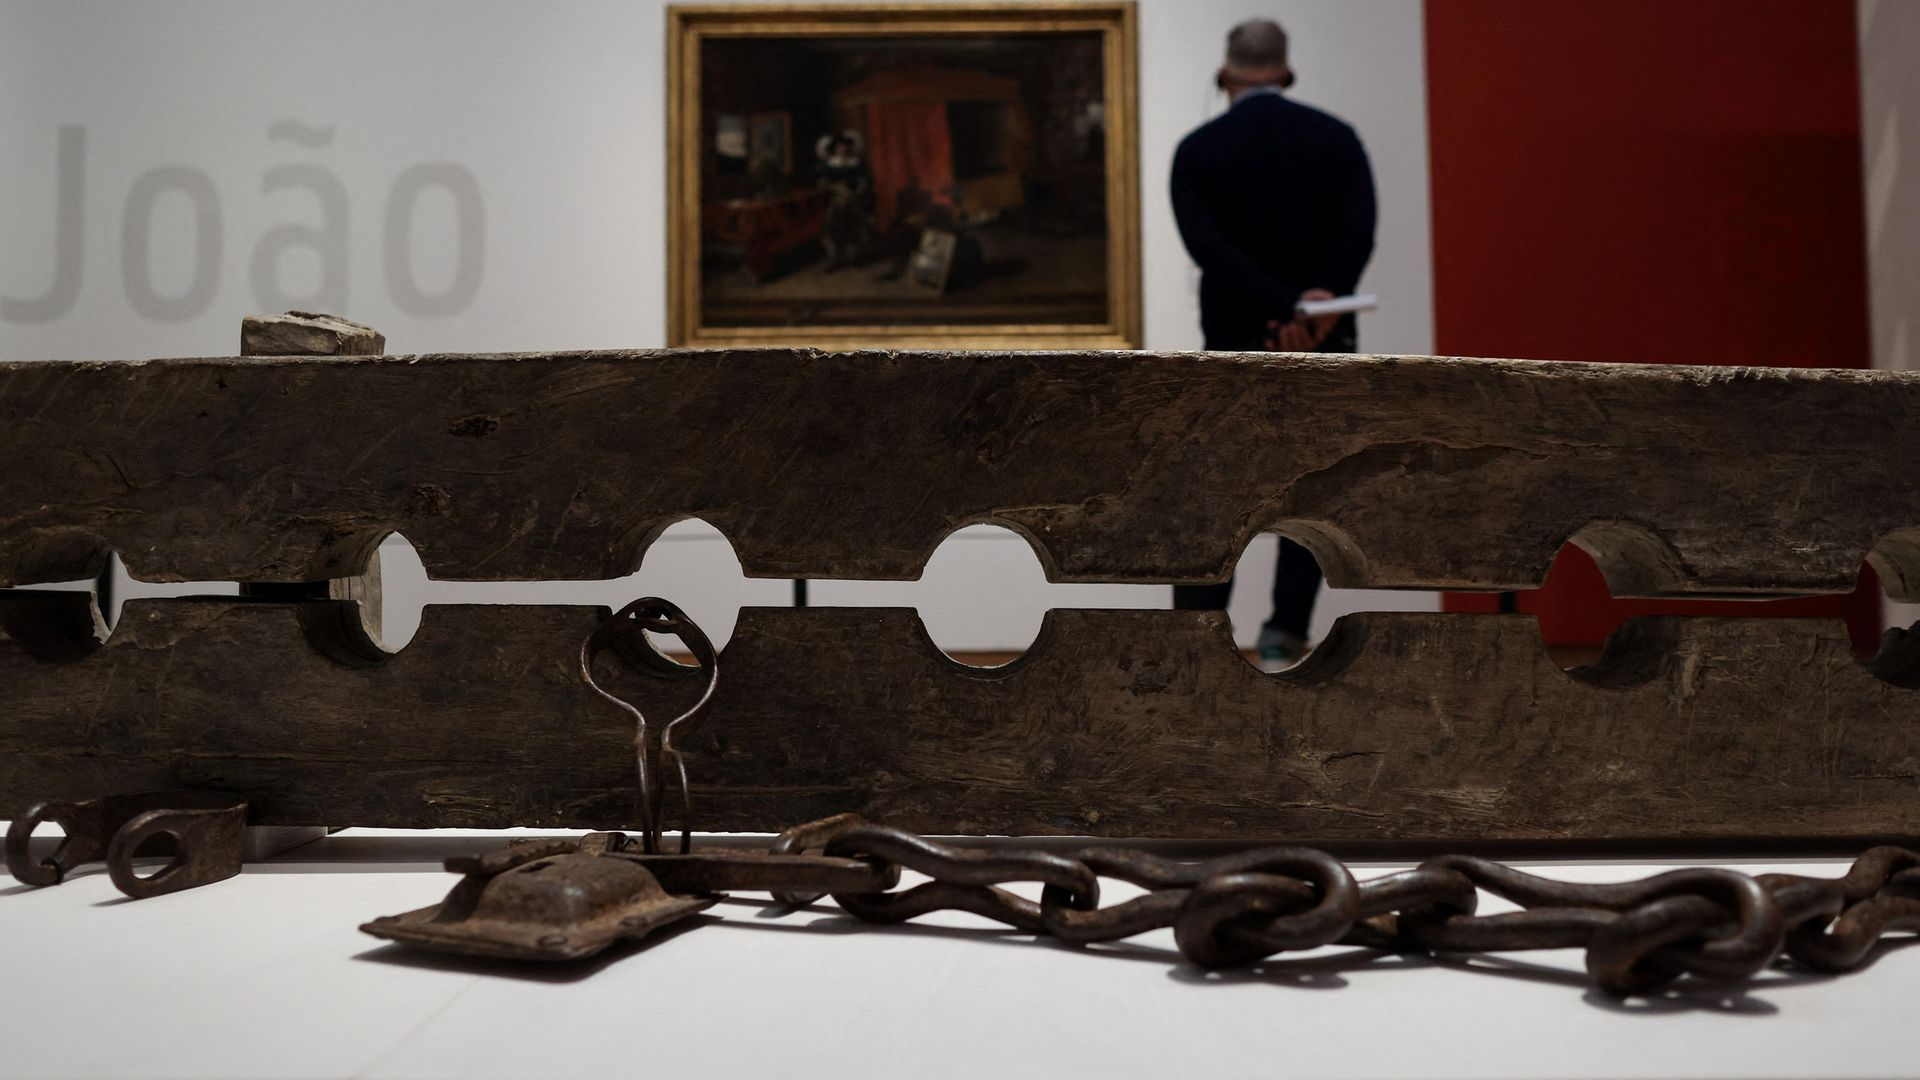 Multiple foot stocks for constraining ensclaved people, as seen in the slavery exhibition at Amsterdam's Rijksmuseum - Credit: Photo by KENZO TRIBOUILLARD/AFP via Getty Images